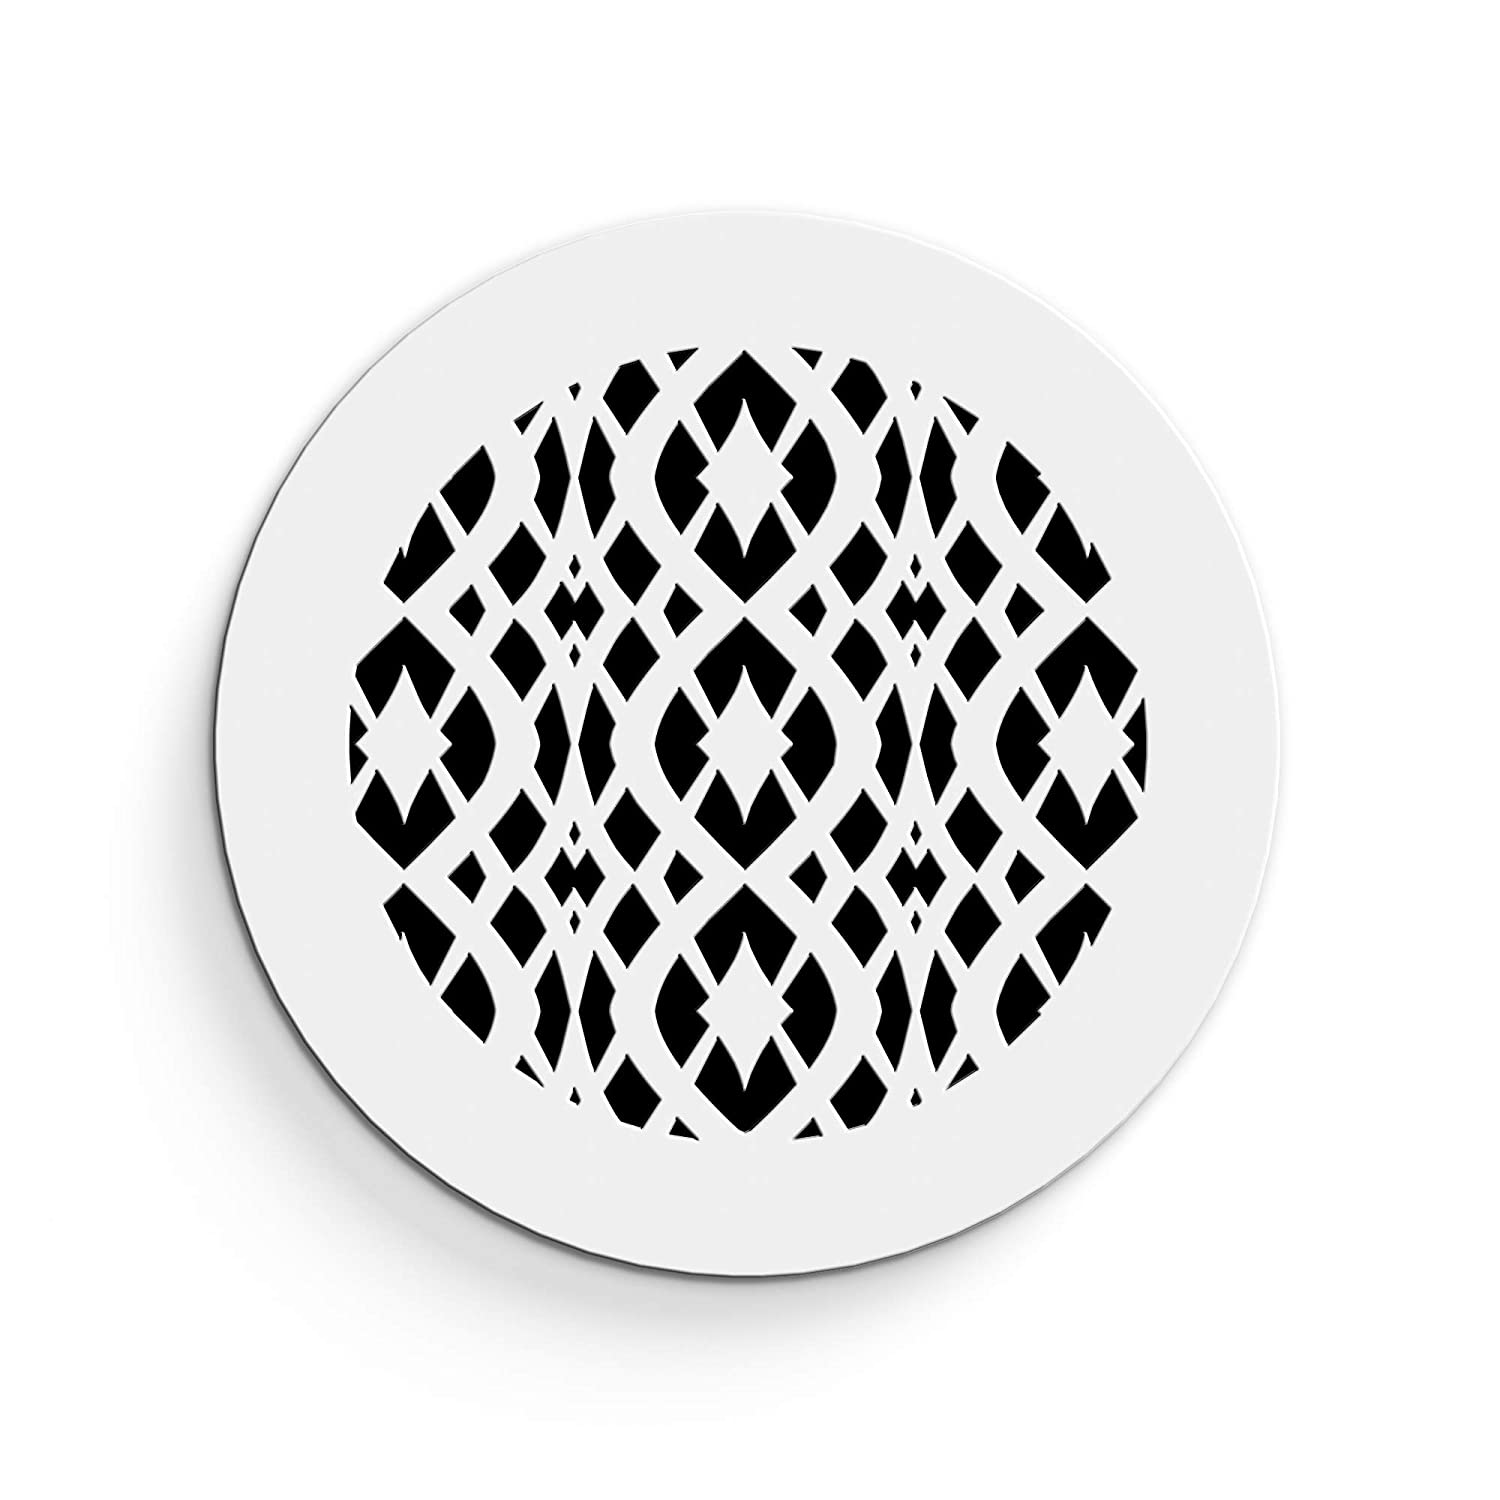 """Saba Air Vent Cover Grille - Acrylic Plexiglass 6"""" Round Duct Opening (7.5"""" Round Overall) White Finish Decorative Register Covers for Walls and Ceilings NOT for Floor USE, Charlotte (1PCs)"""